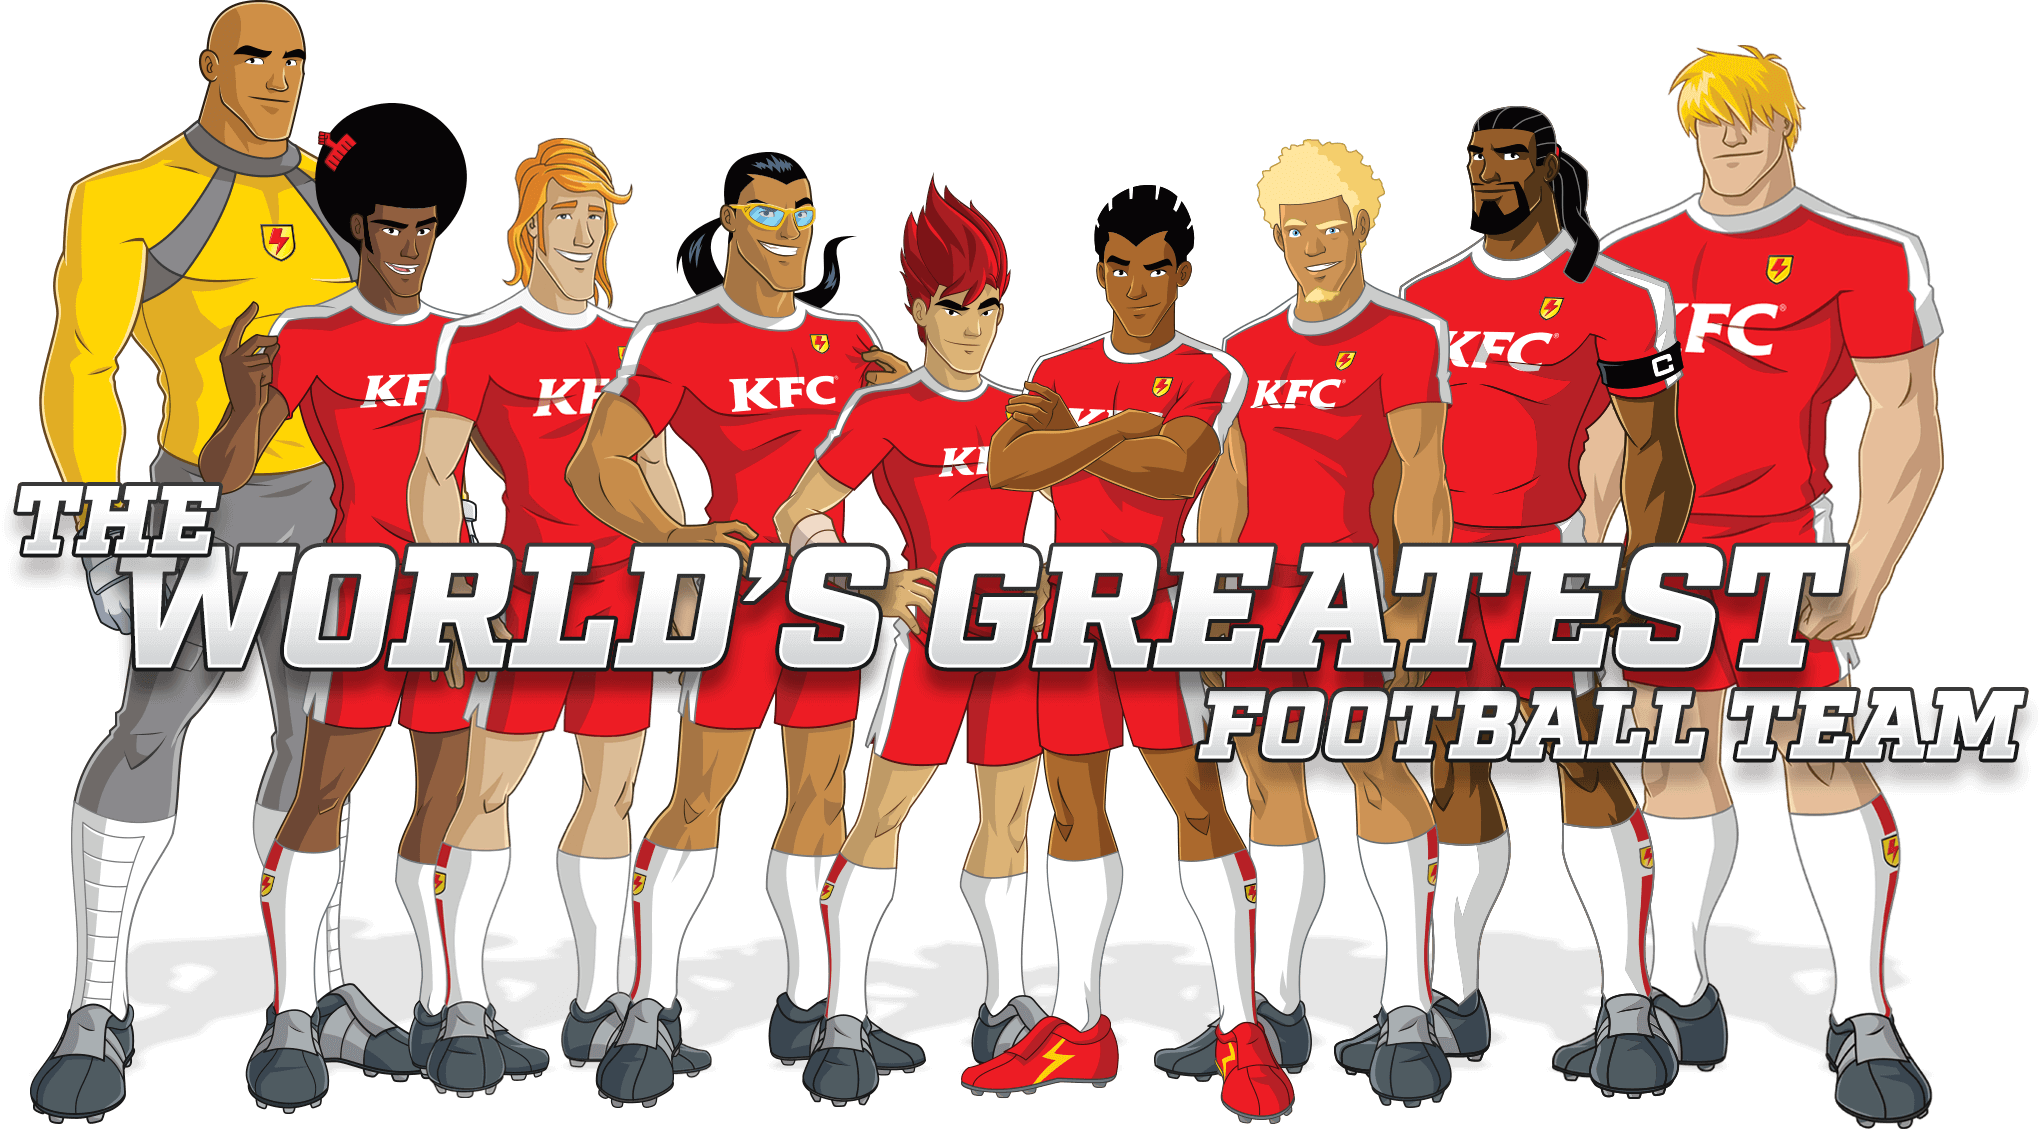 The Worlds greatest football team